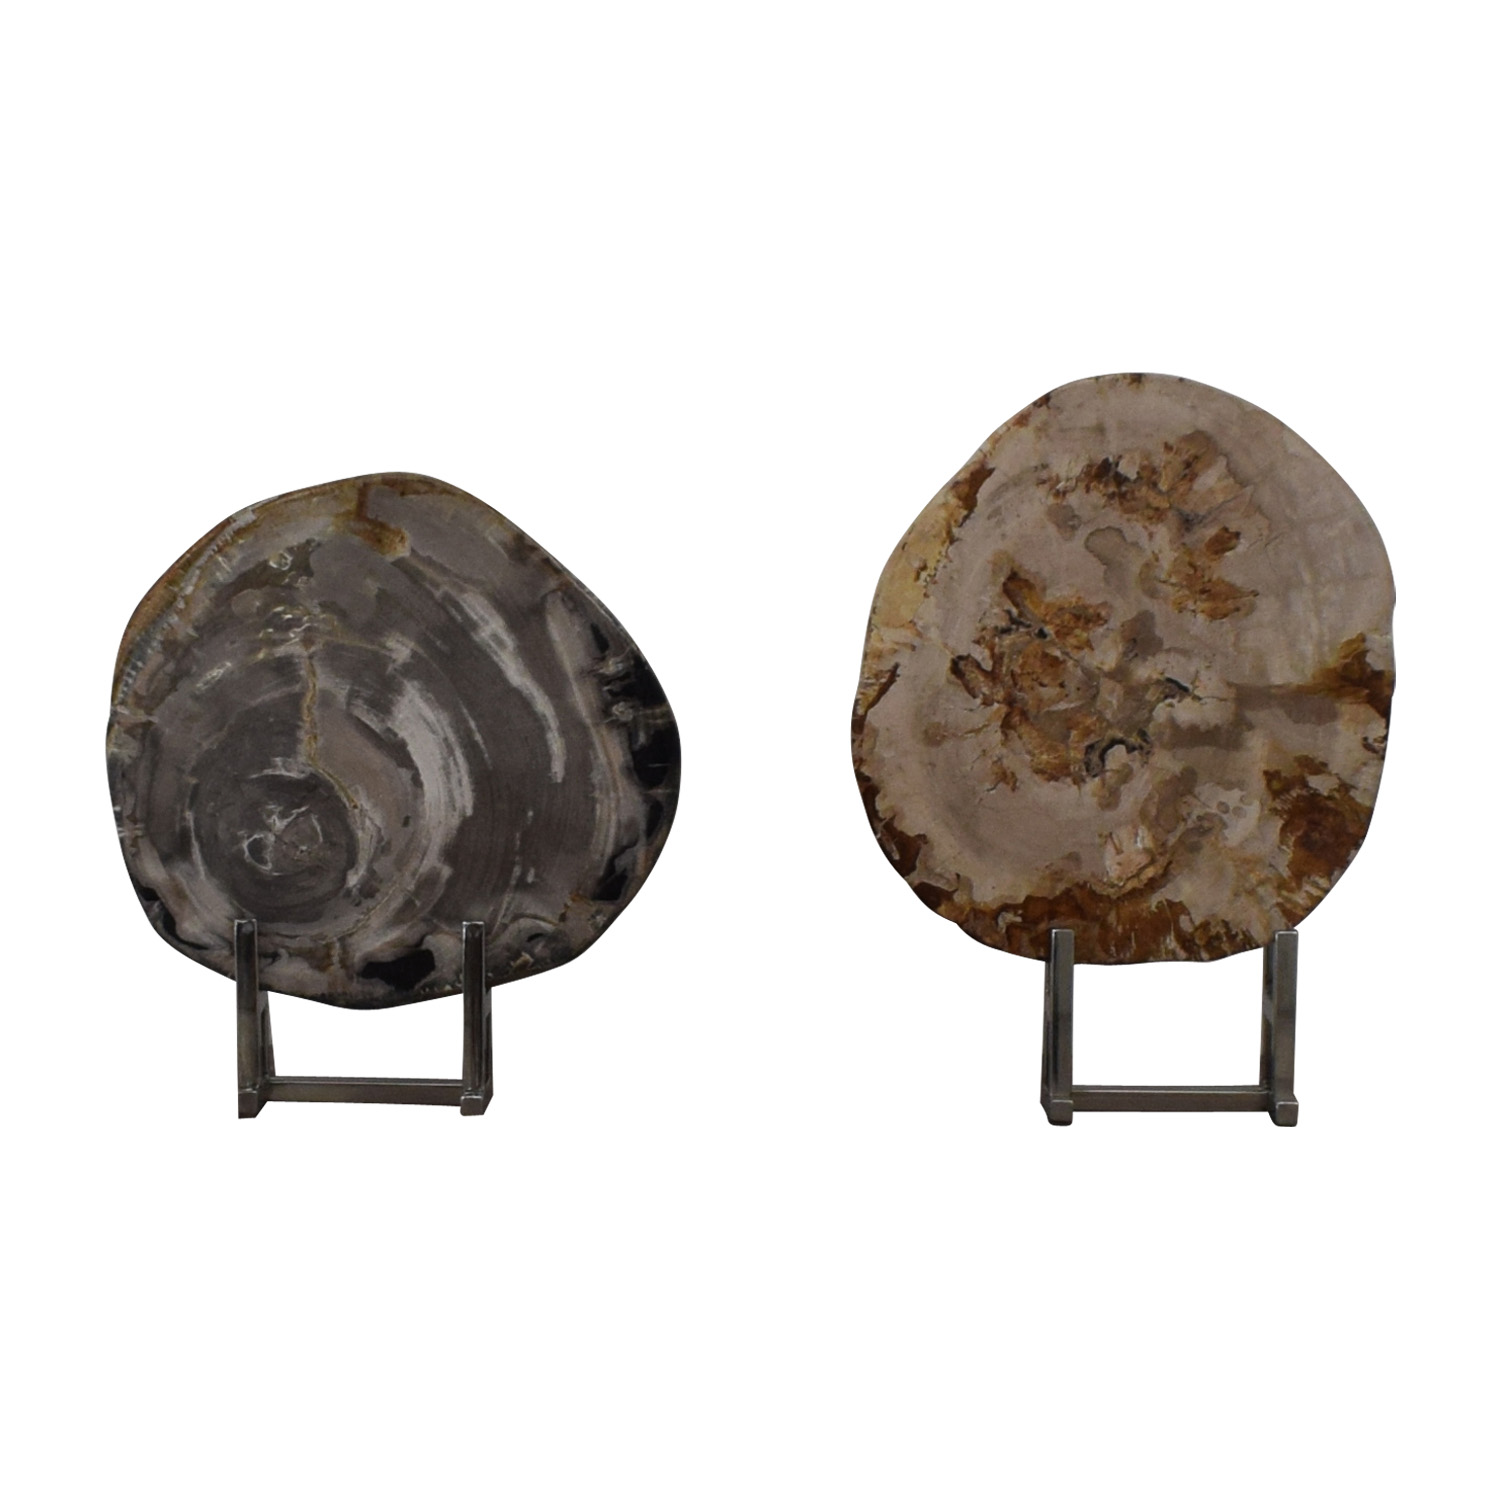 buy Adrianna Shamaris Stone Objects in Chrome Stands  Decor